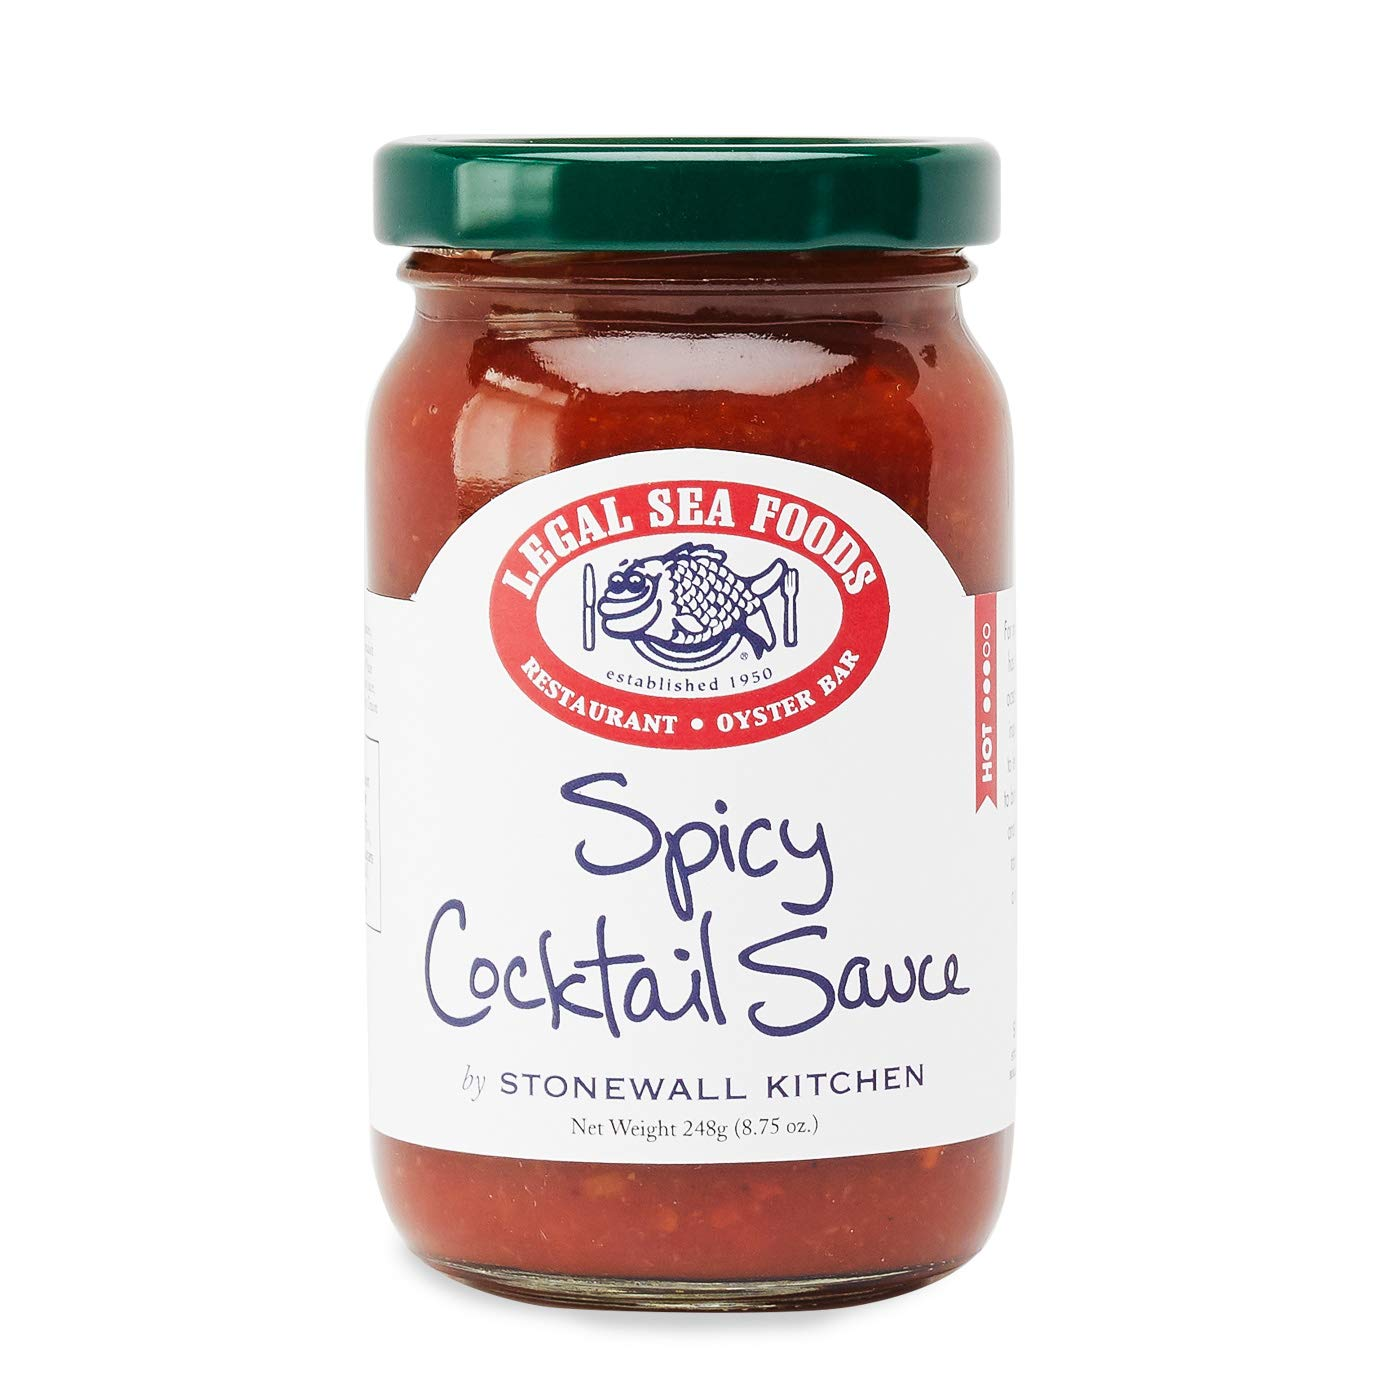 Legal Sea Foods Spicy Cocktail Sauce, 8.75 ounces